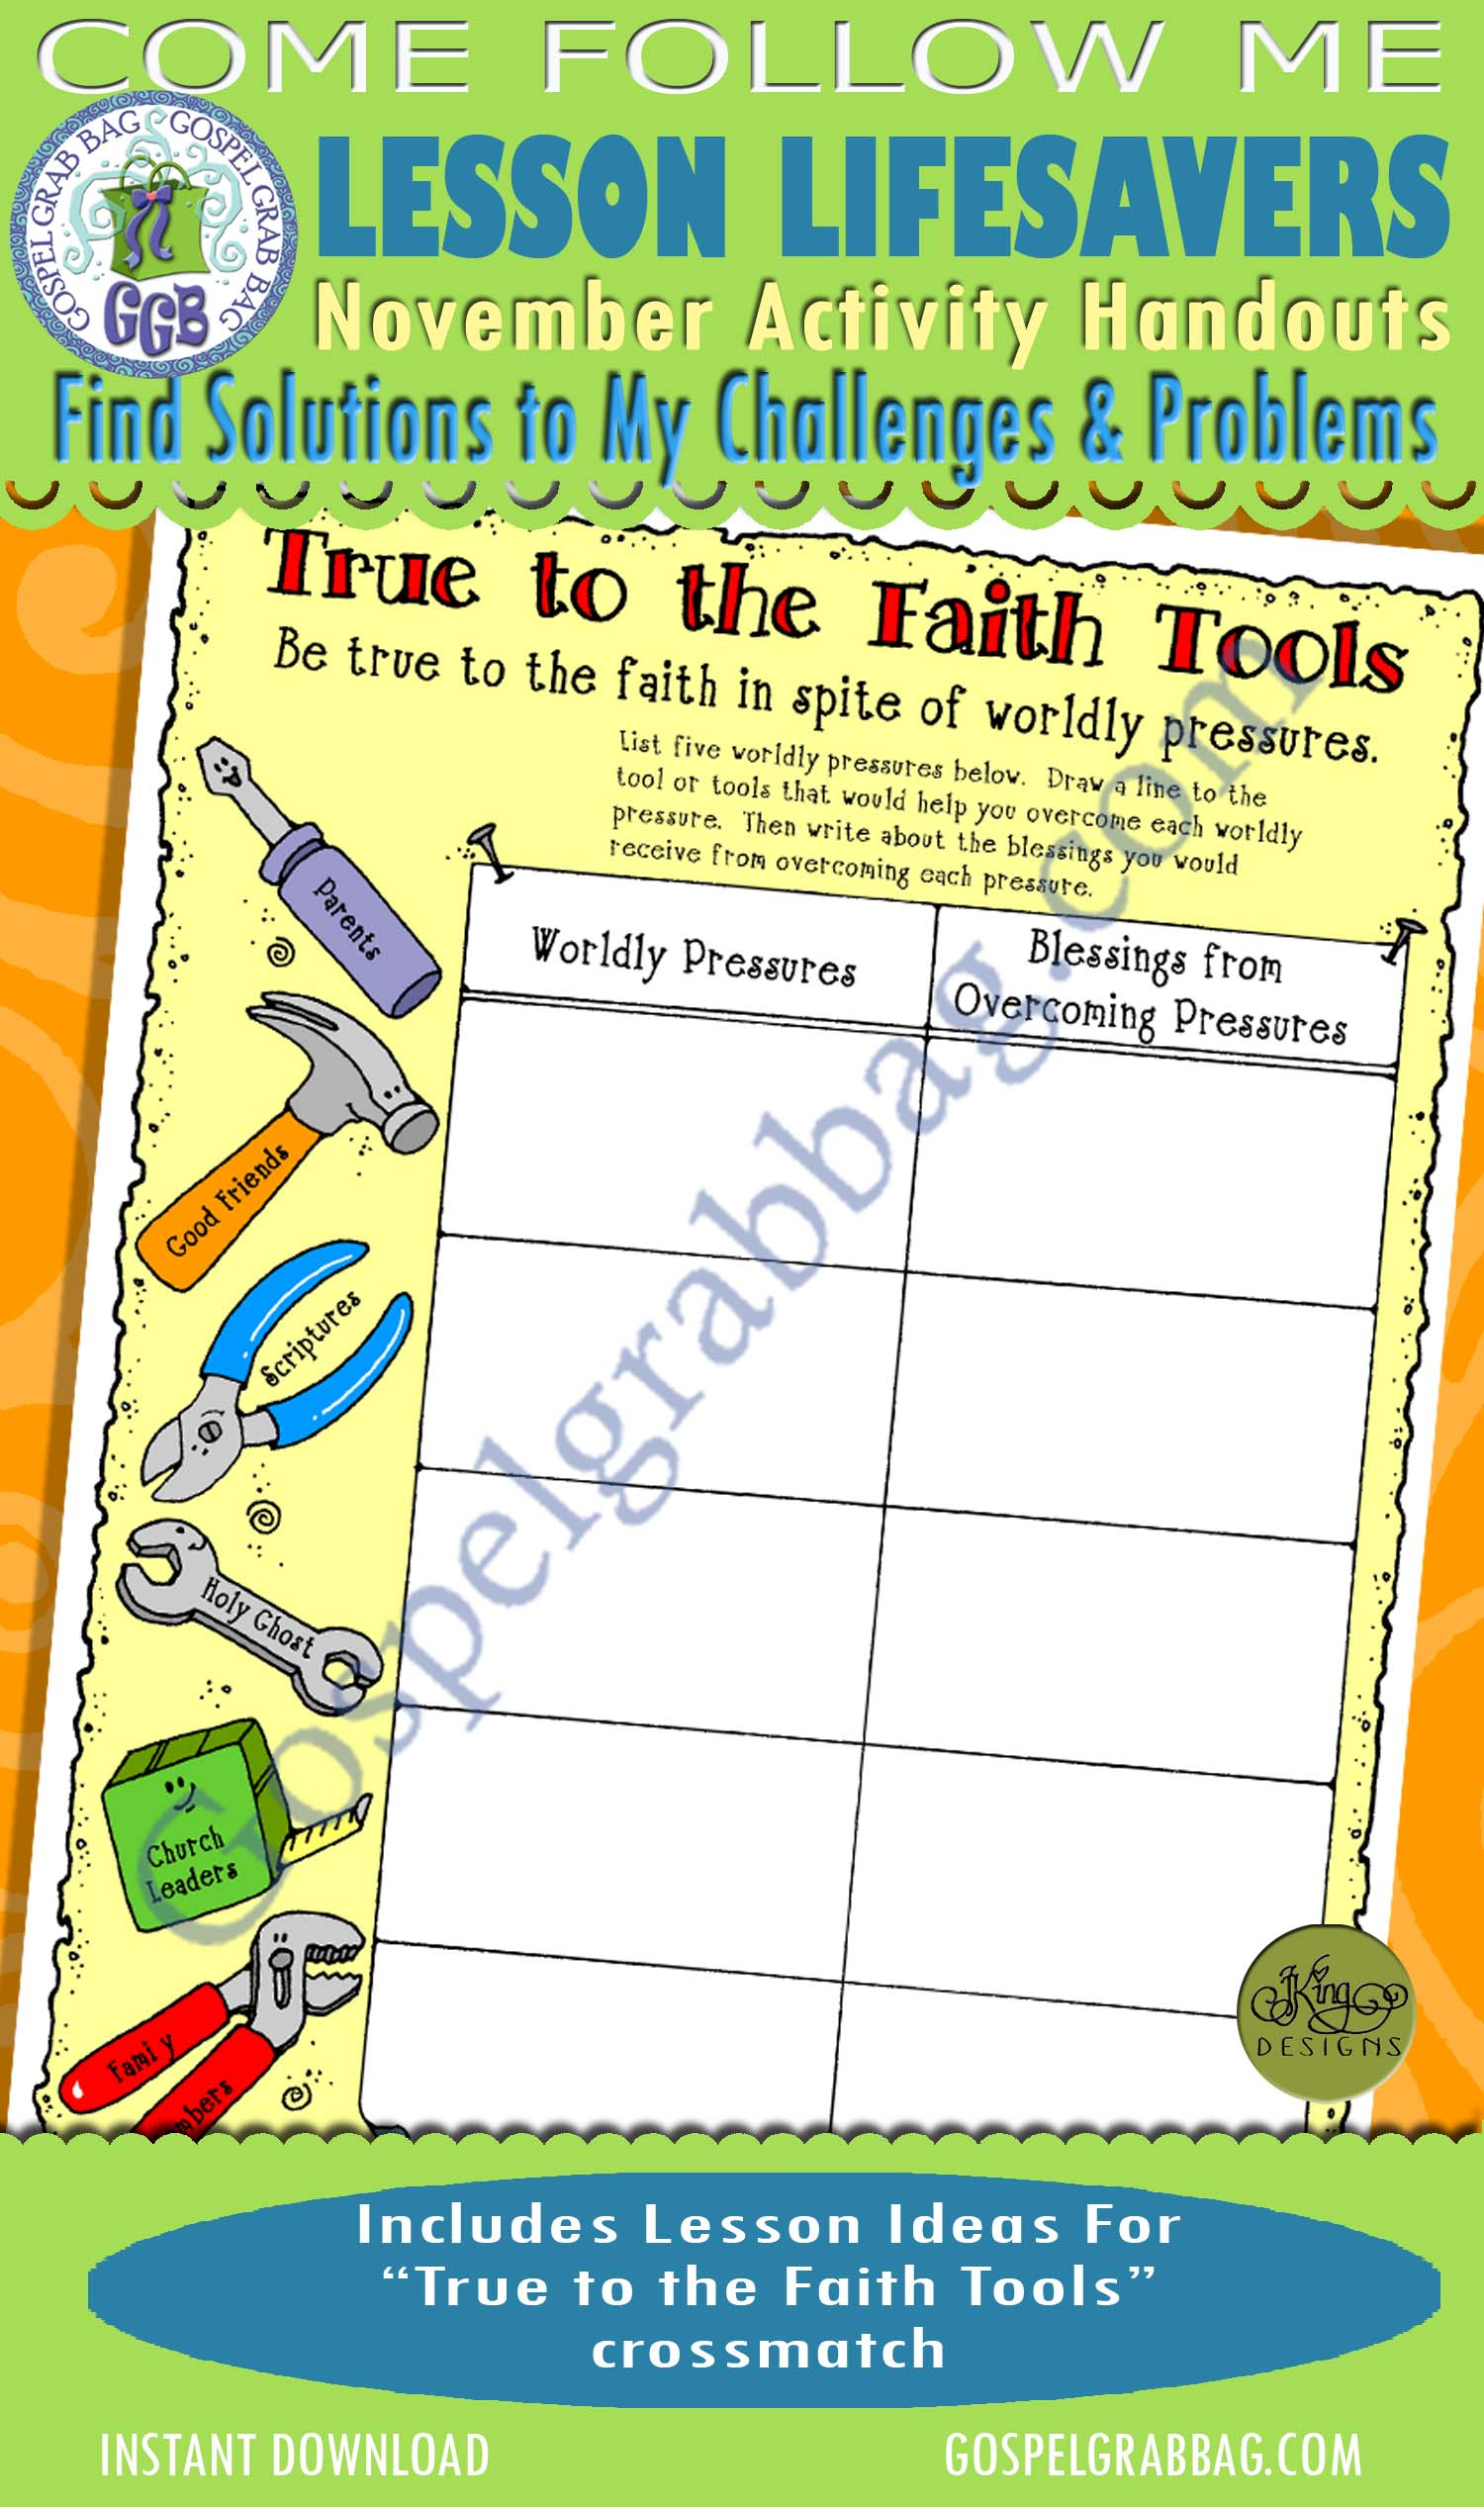 "$1.75 November Lesson 7 - Come Follow Me ""How can I find solutions to my challenges and problems?"" ACTIVITY: True to the Faith Tools crossmatch"